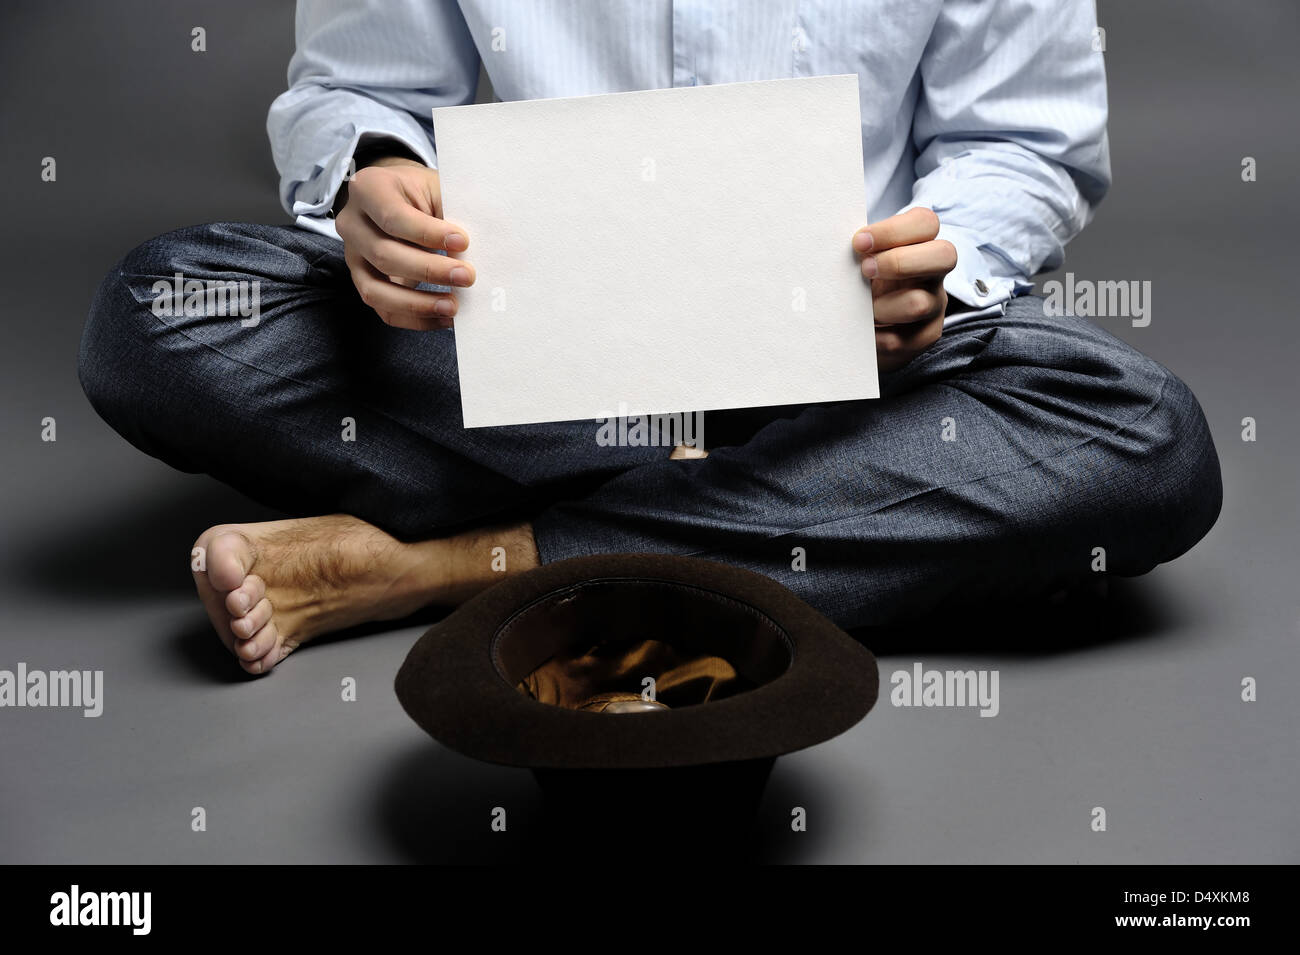 An image of a beggar with a hat and a sheet of paper - Stock Image